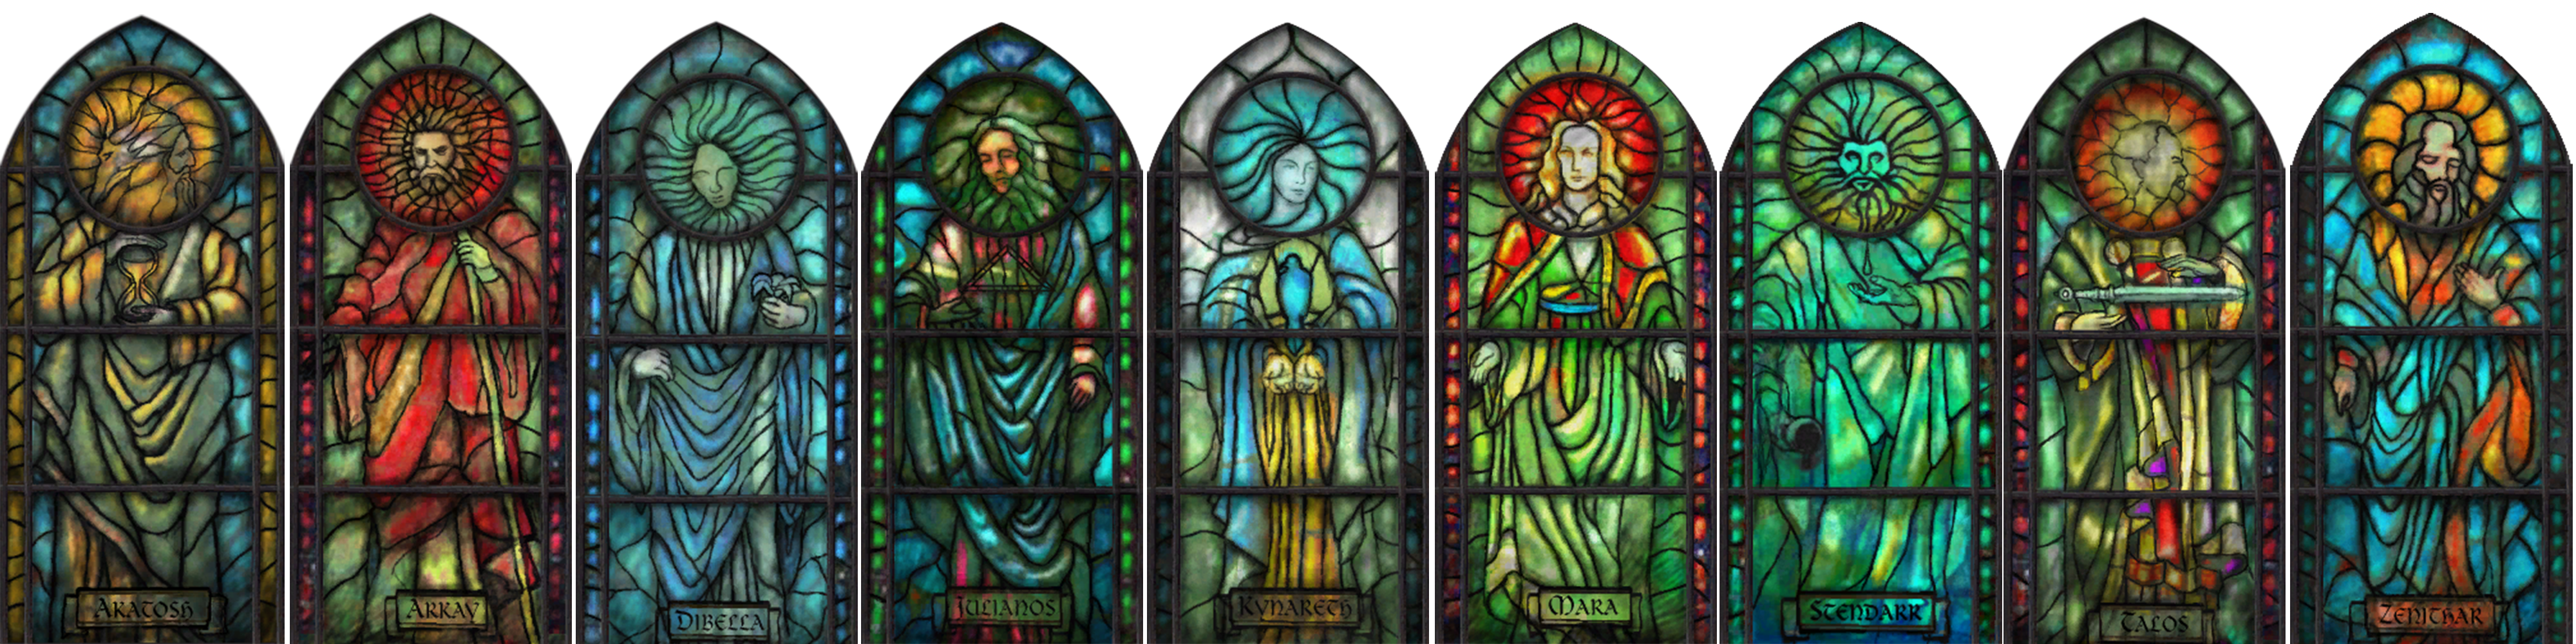 http://vignette3.wikia.nocookie.net/elderscrolls/images/9/9d/Nine_Divines_Stained_Glass.png/revision/latest?cb=20161014203324